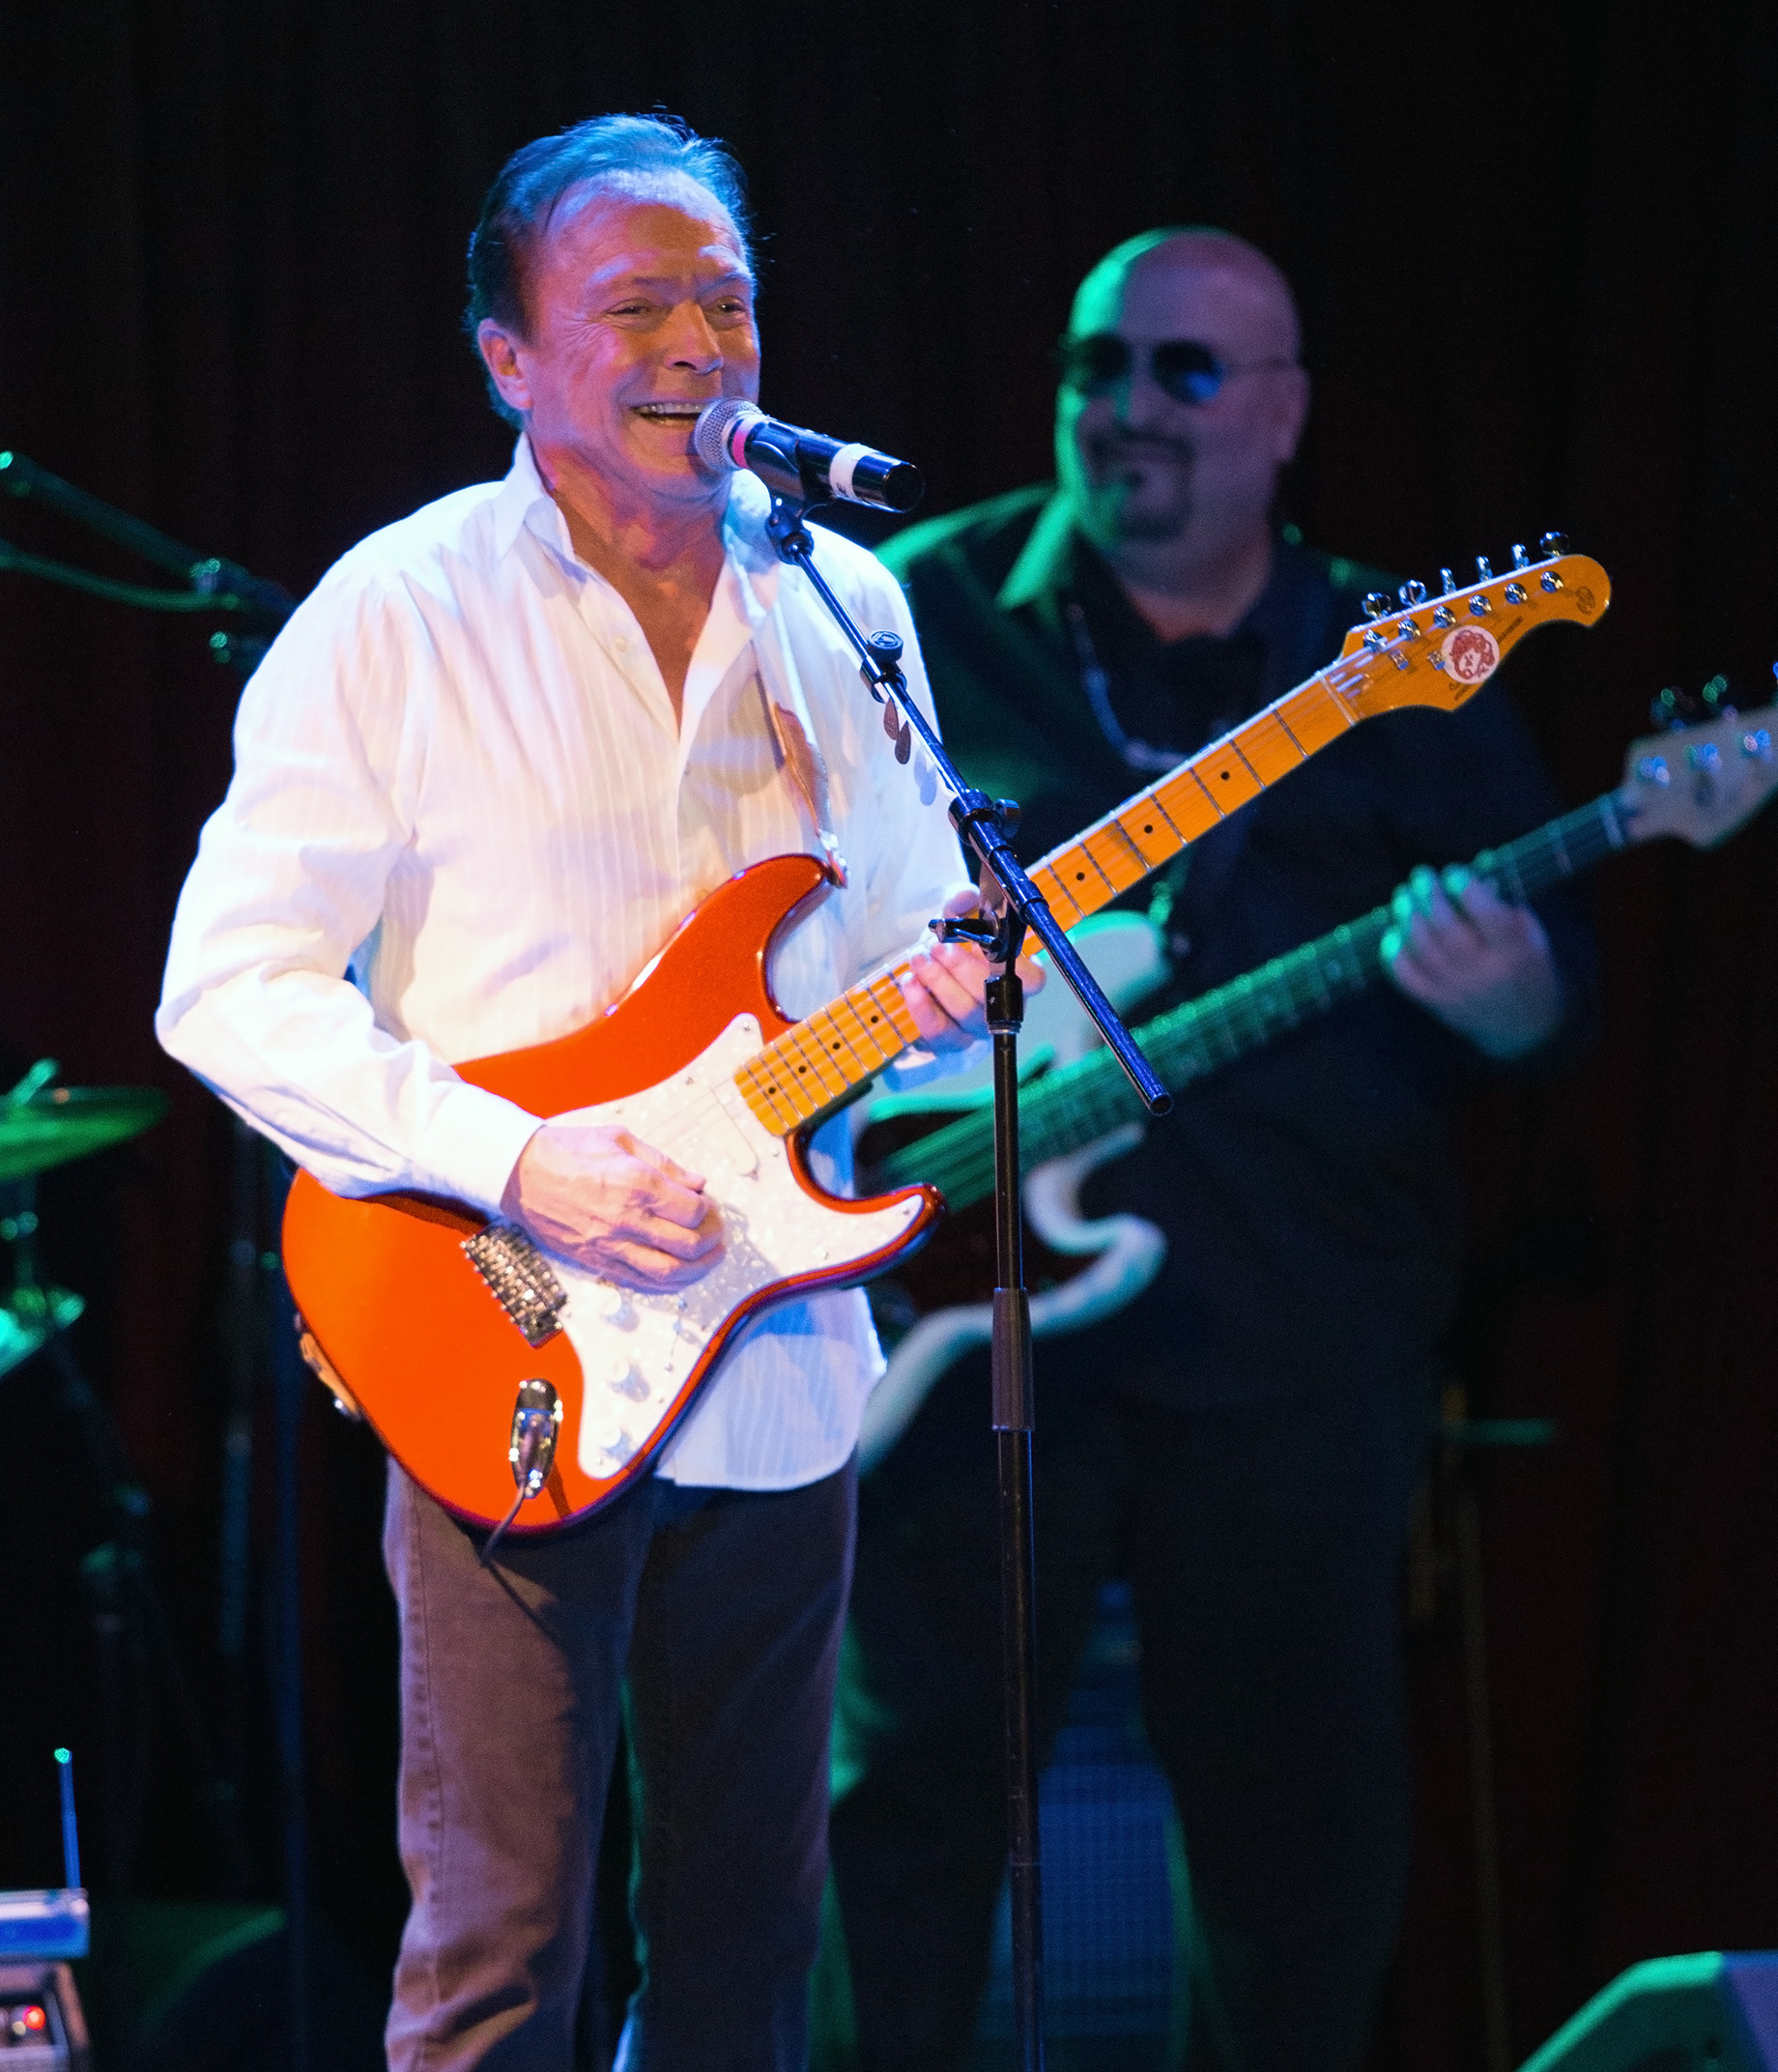 David Cassidy performs a sold out show at B.B. King Blues Club & Grill despite feeling unwell with Laryngitis                                    Featuring: David Cassidy                  Where: New York, New York, United States                  When: 04 Mar 2017                  Credit: WENN.com